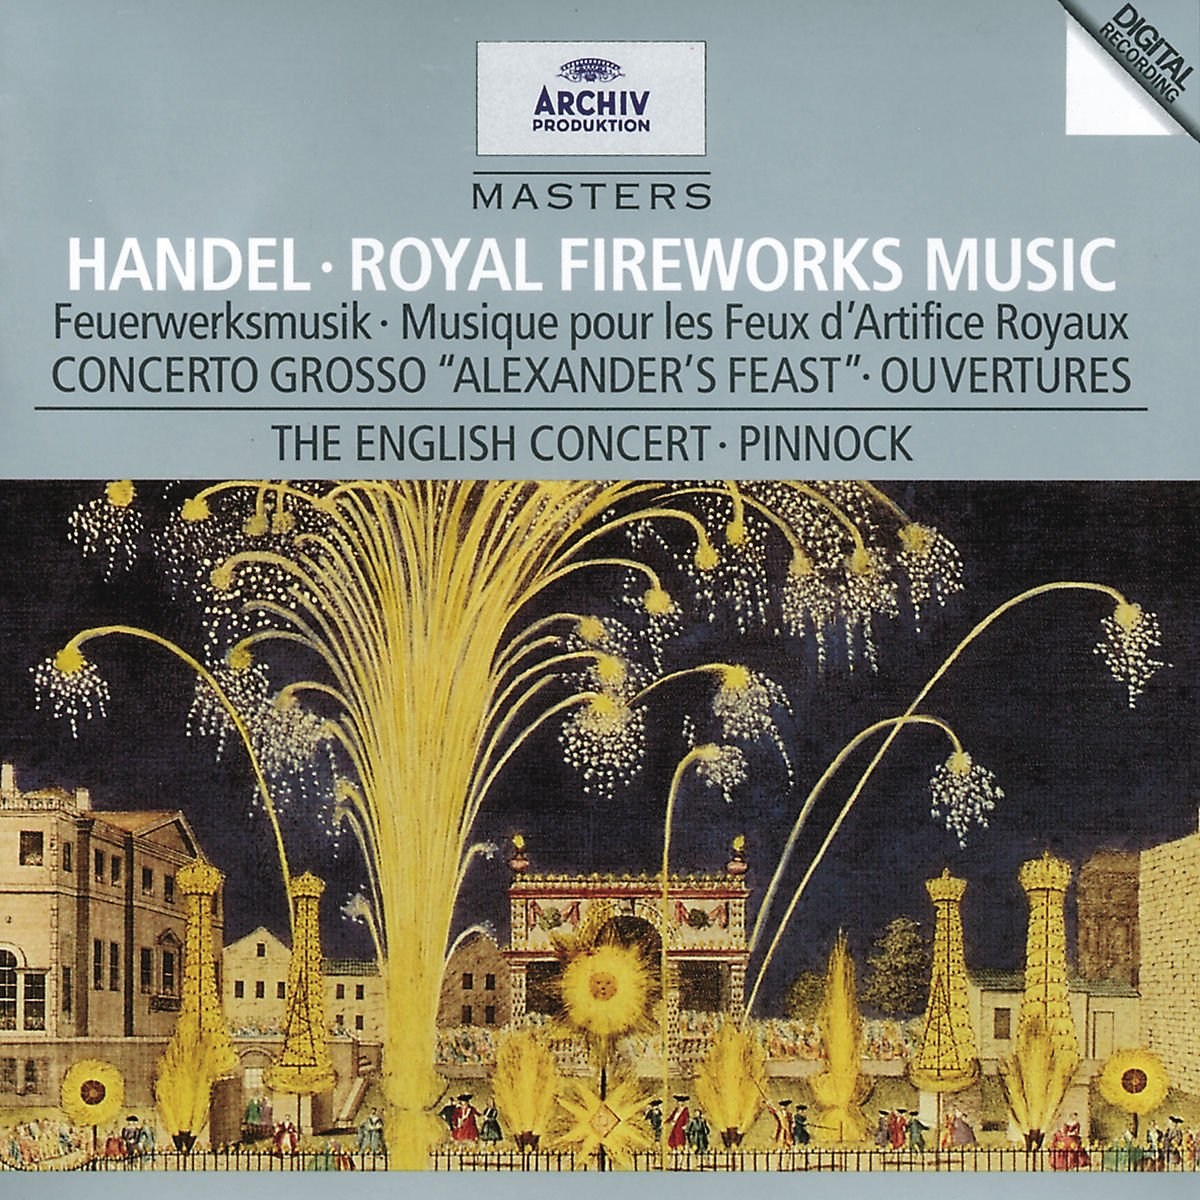 Handel - Royal Fireworks Music · Concerto Grosso ''Alexander's Feast'' · Overtures / The English Concert · Pinnock